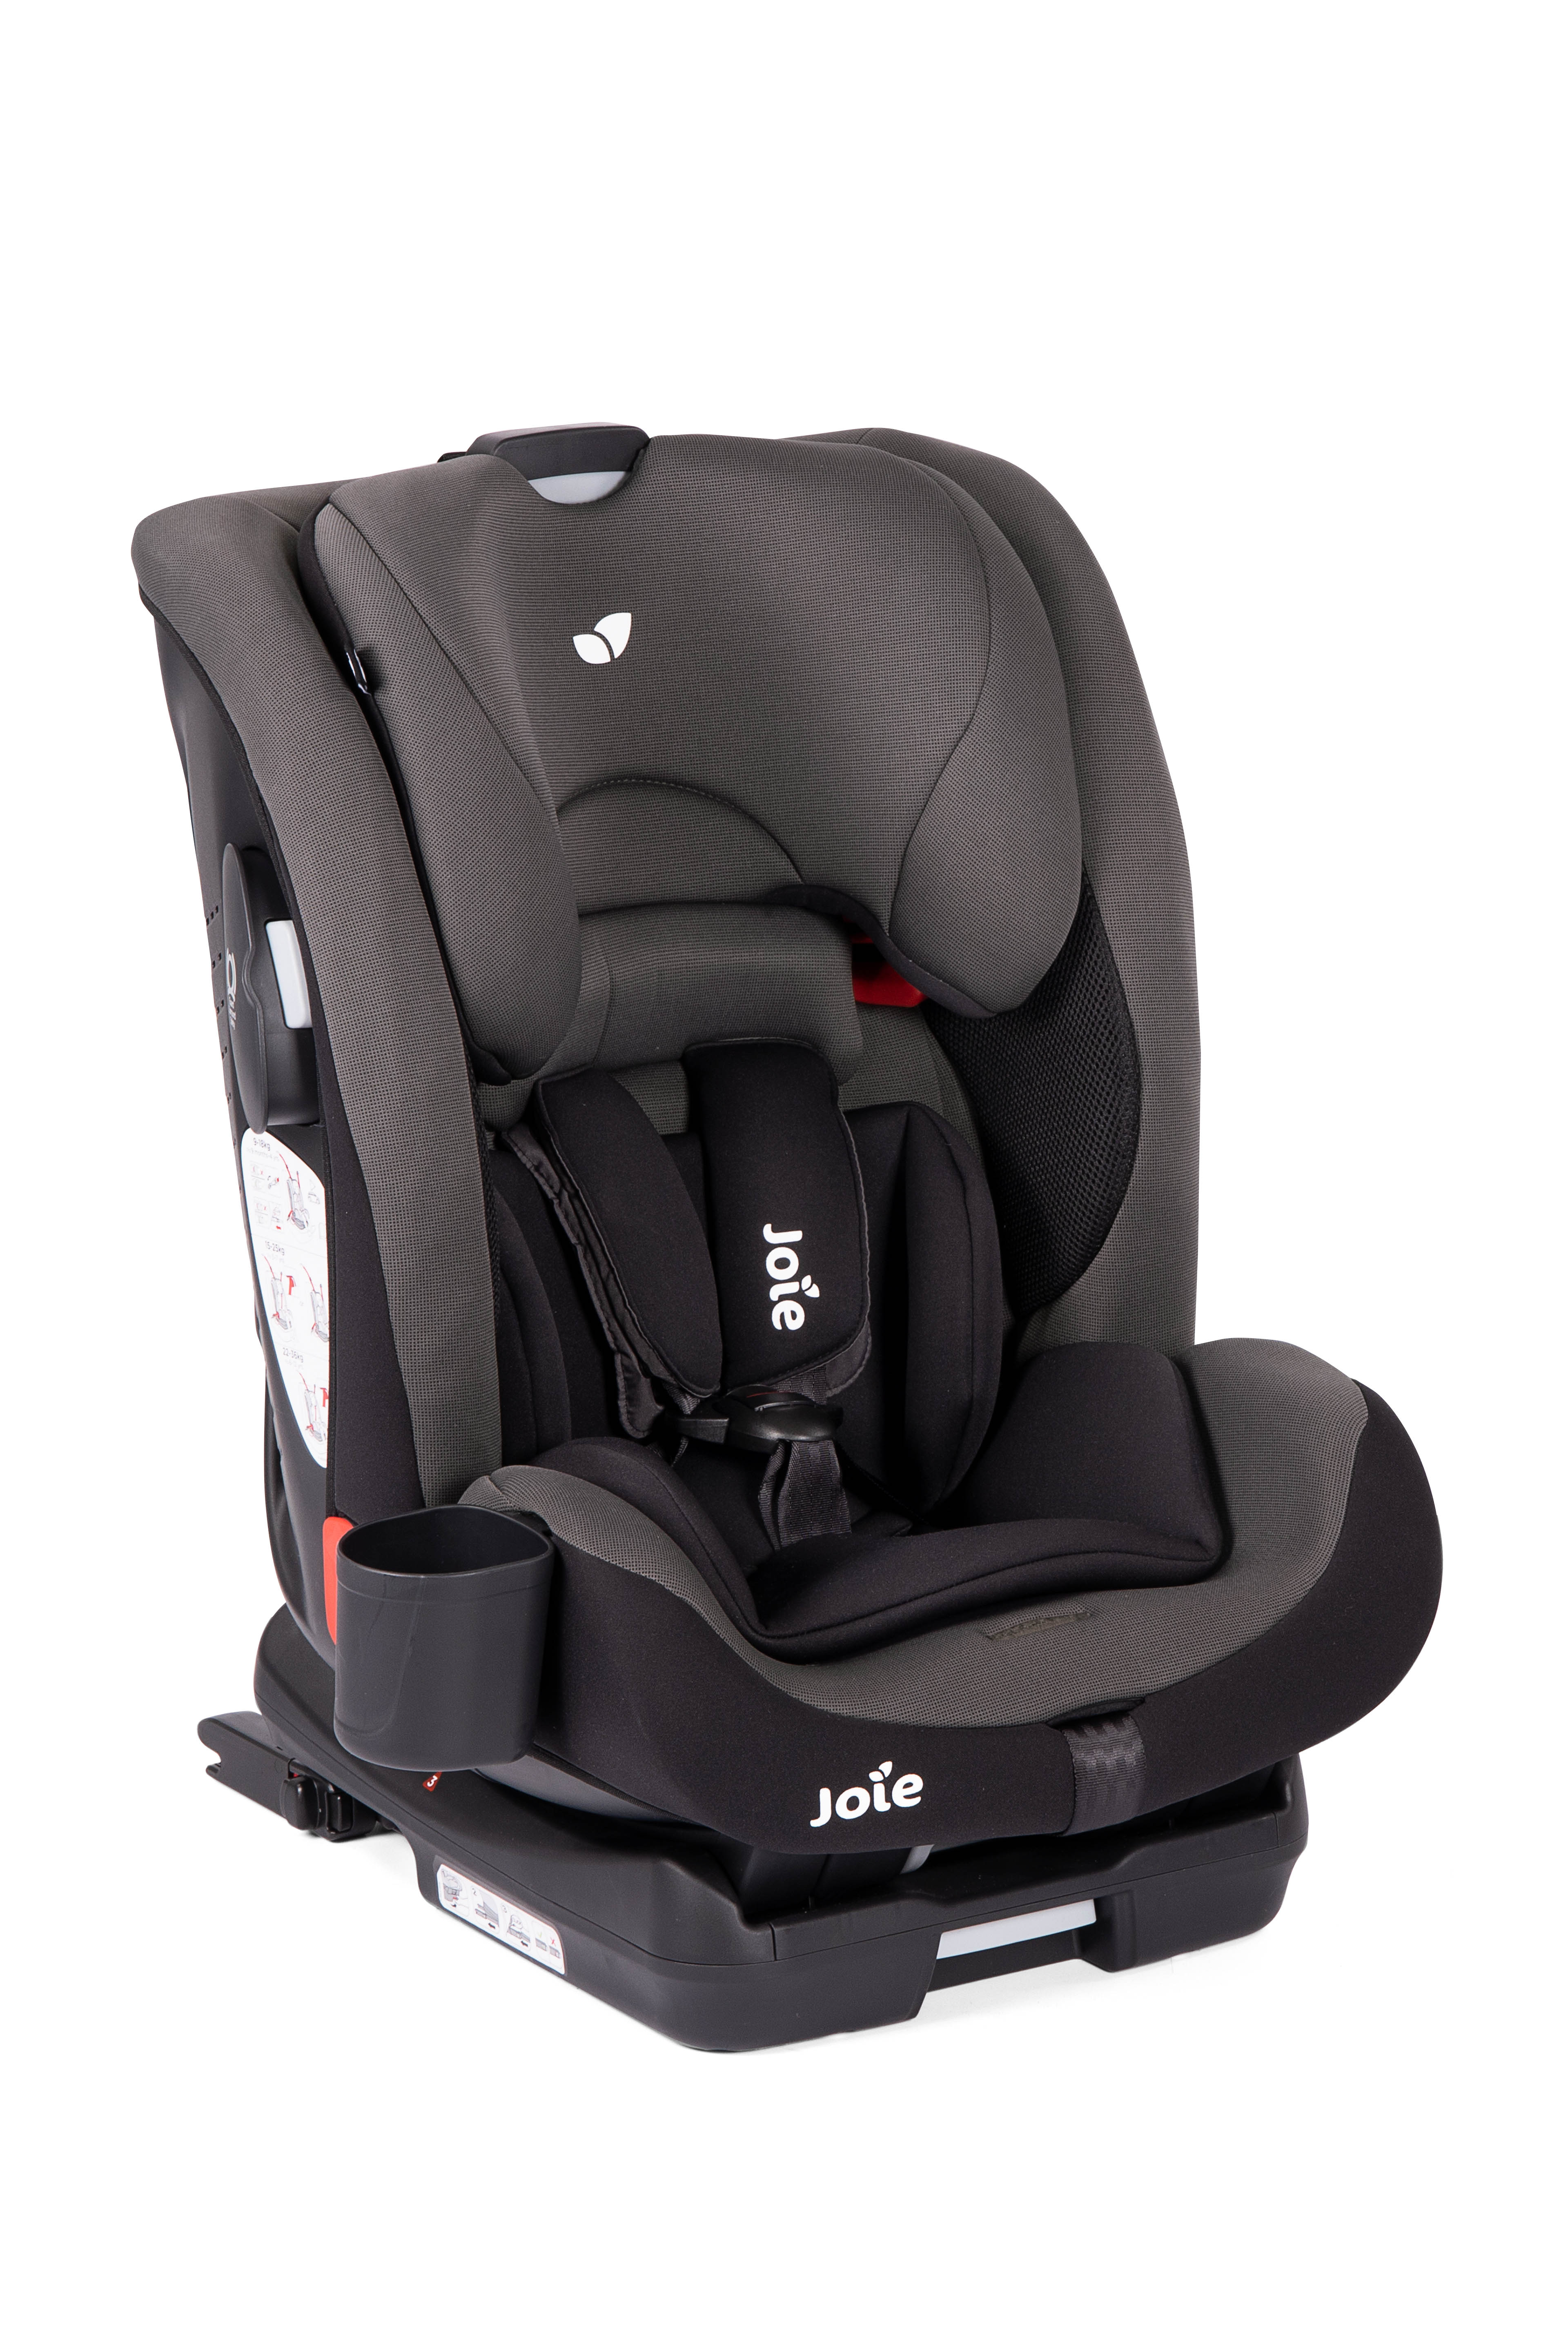 Joie Baby Car Seat Usa Car Seats Archives Joie United Kingdom Explore Joie